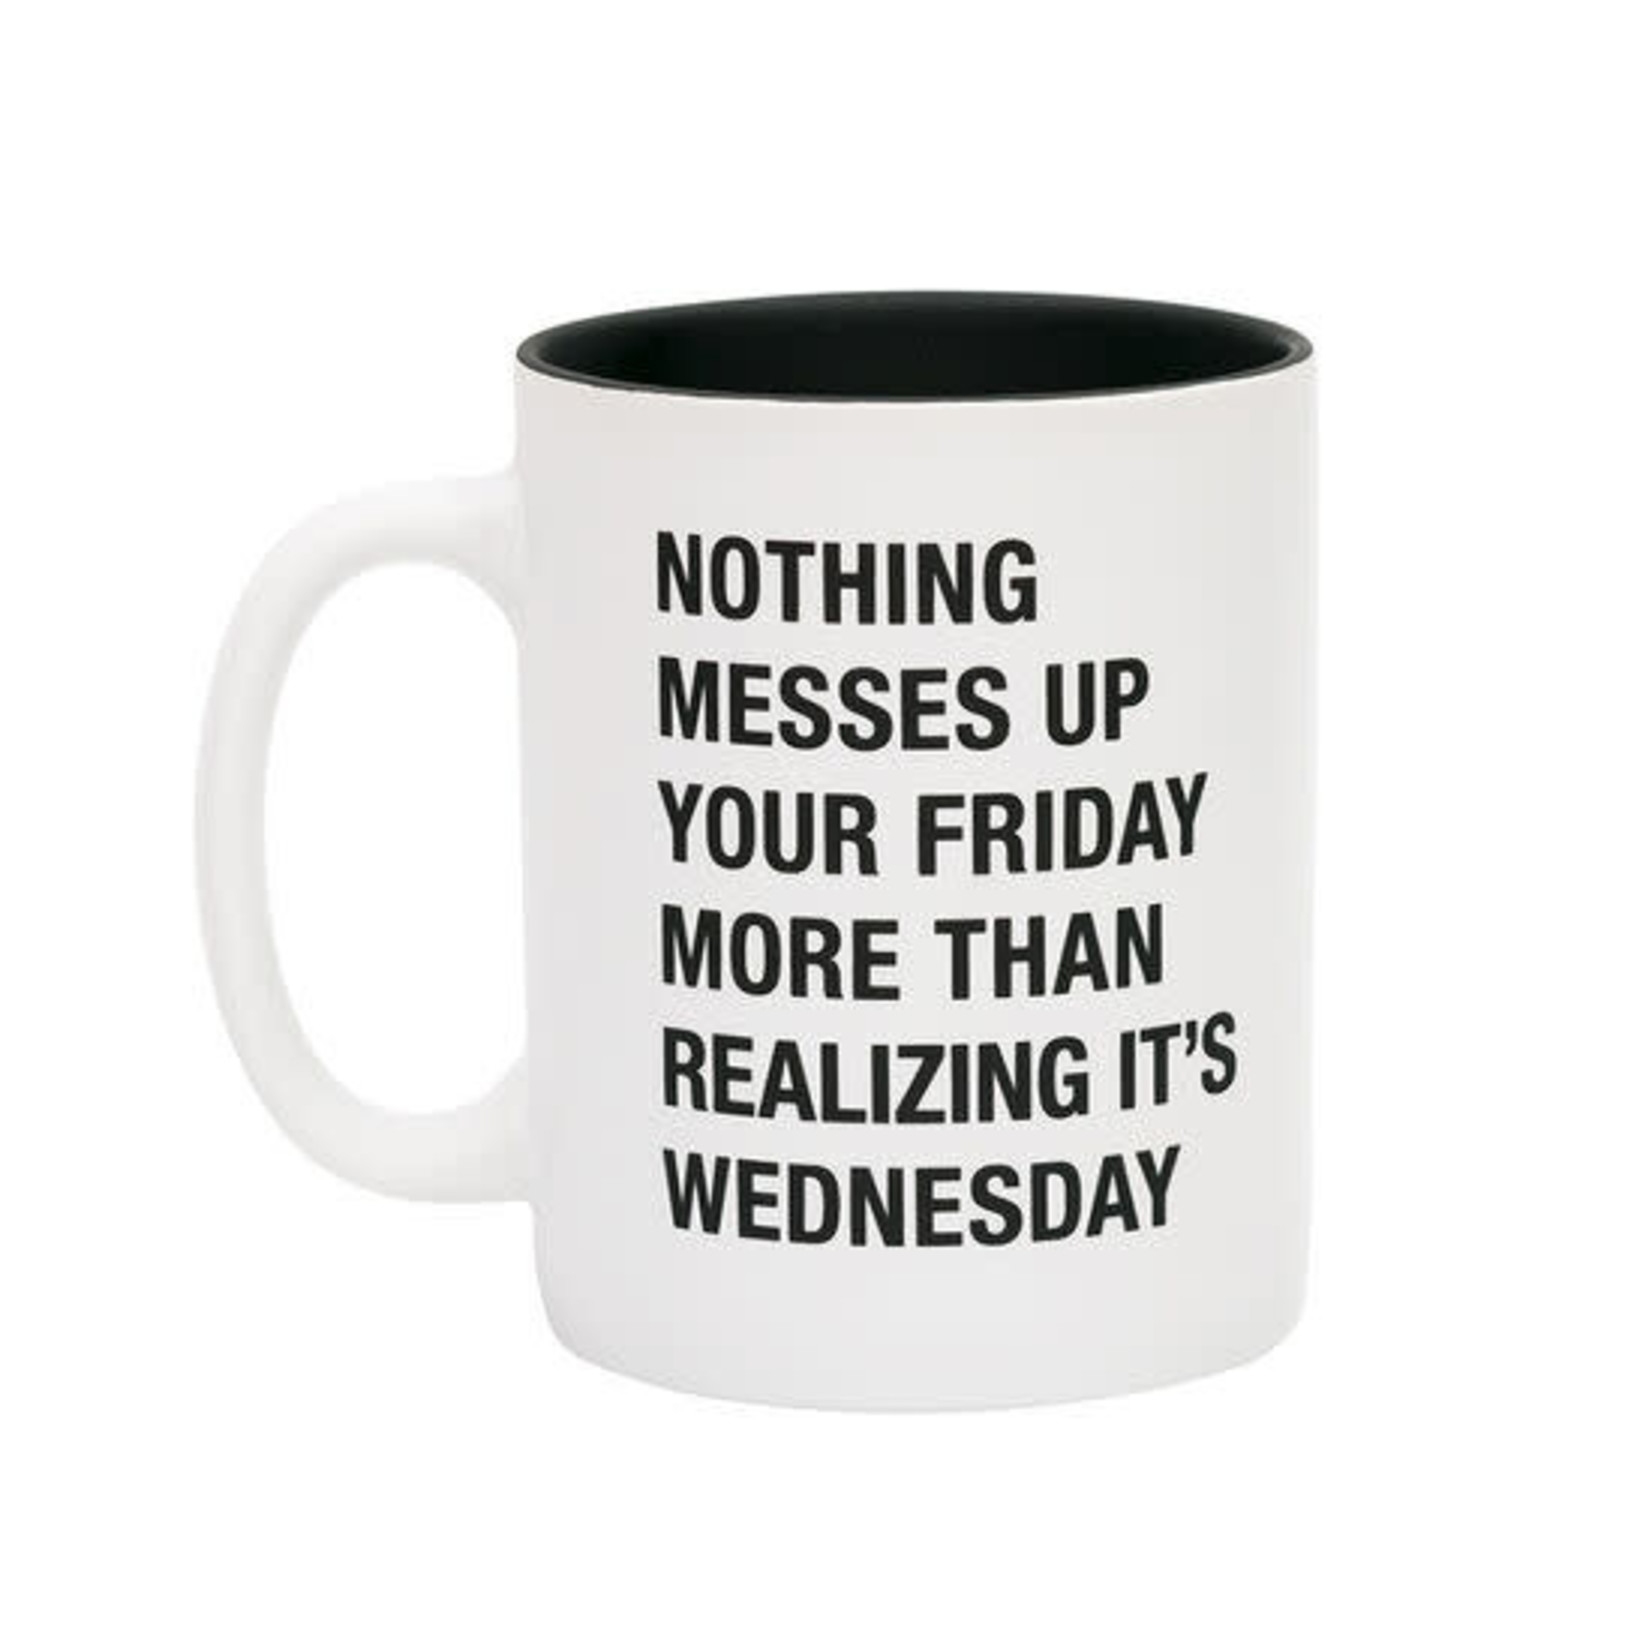 About Face Designs, Inc Mug: Realizing It's Wednesday